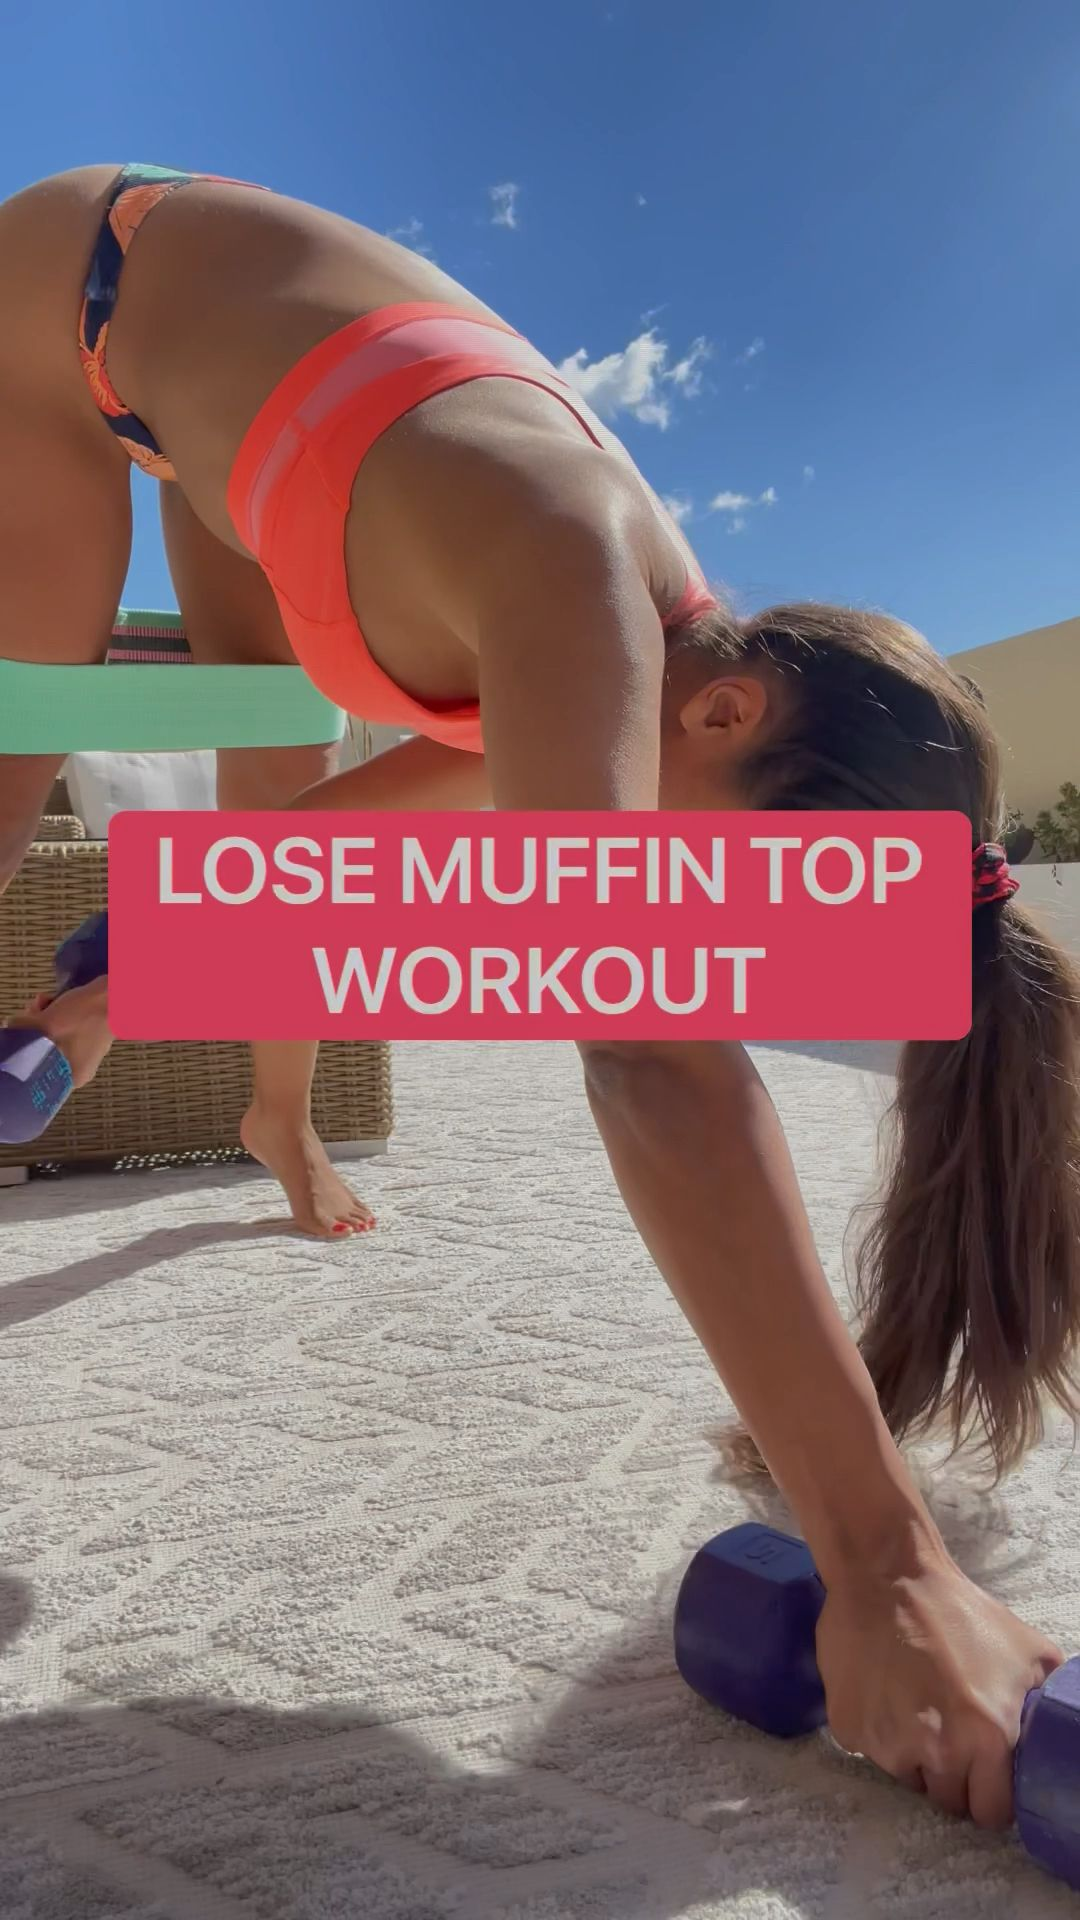 HOW TO LOSE THE MUFFIN TOP